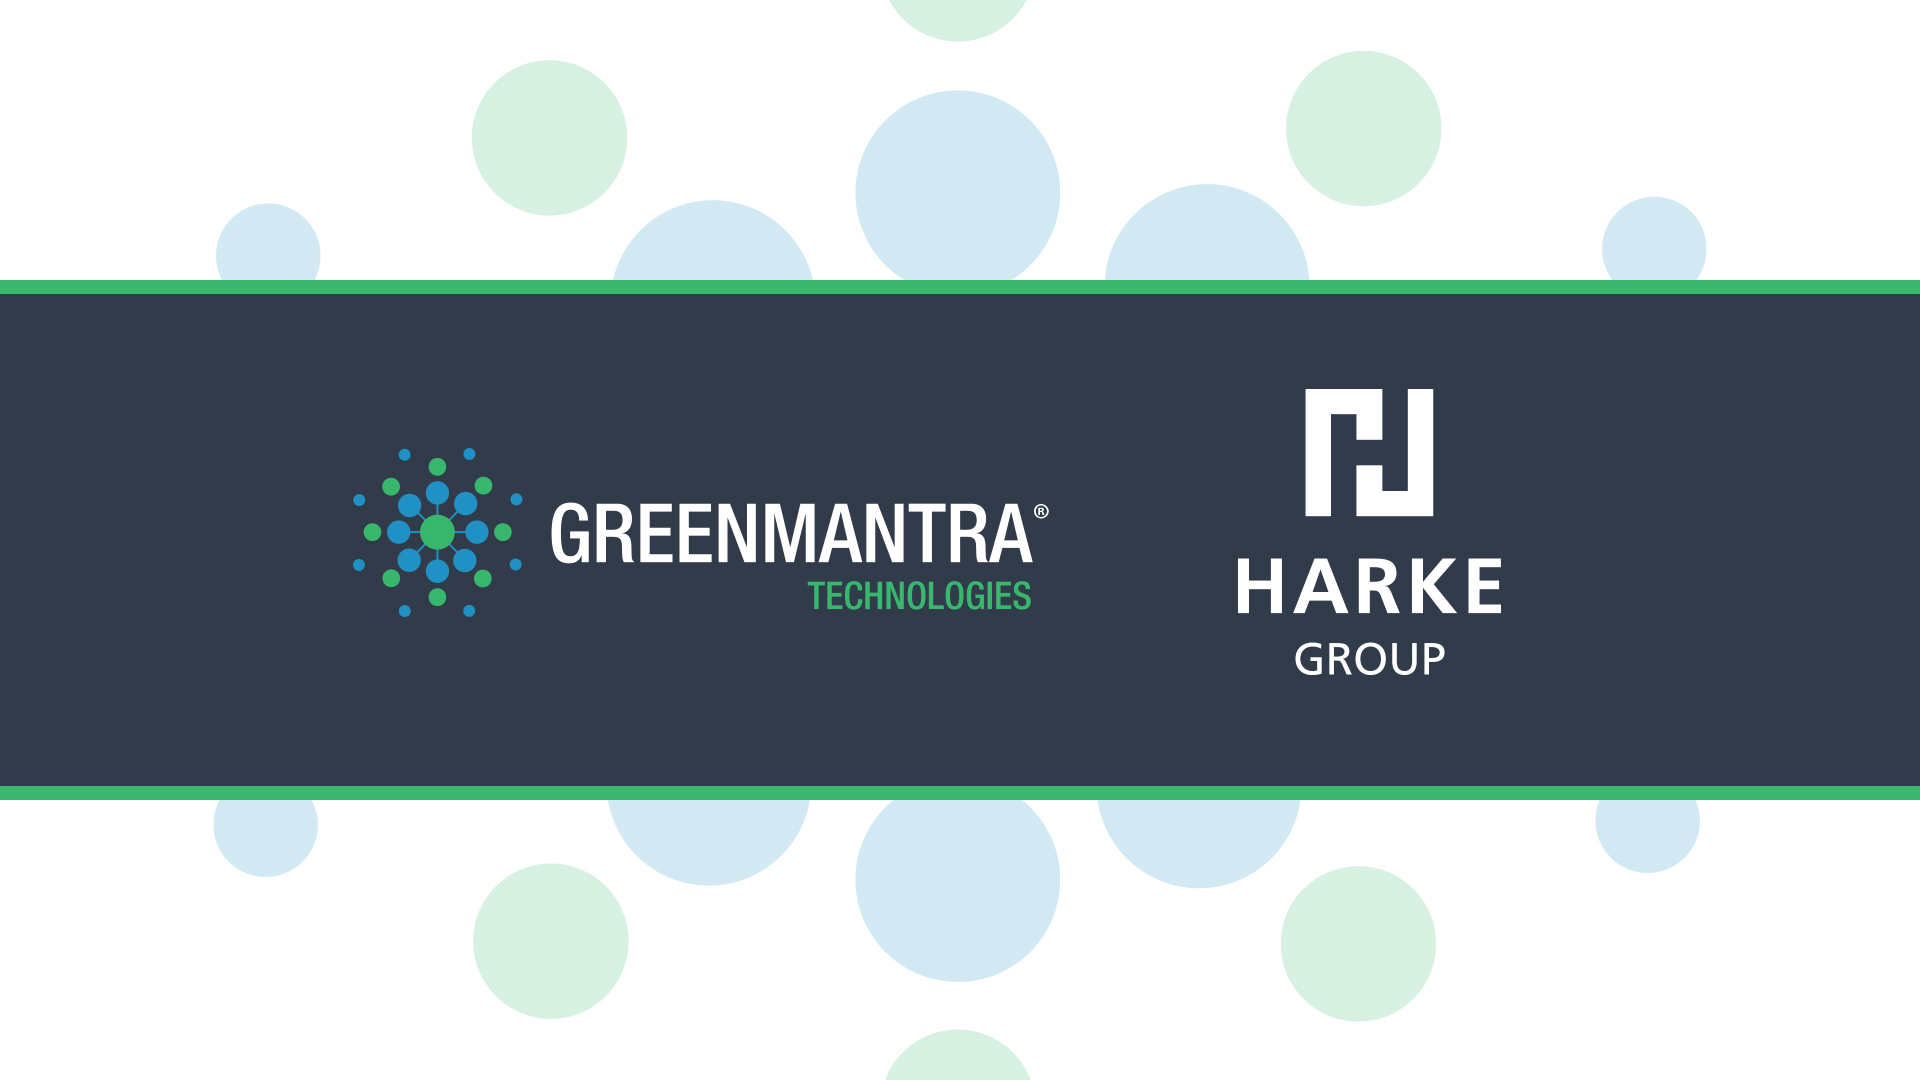 GreenMantra Technologies Announces Exclusive Distribution Relationship with HARKE GROUP